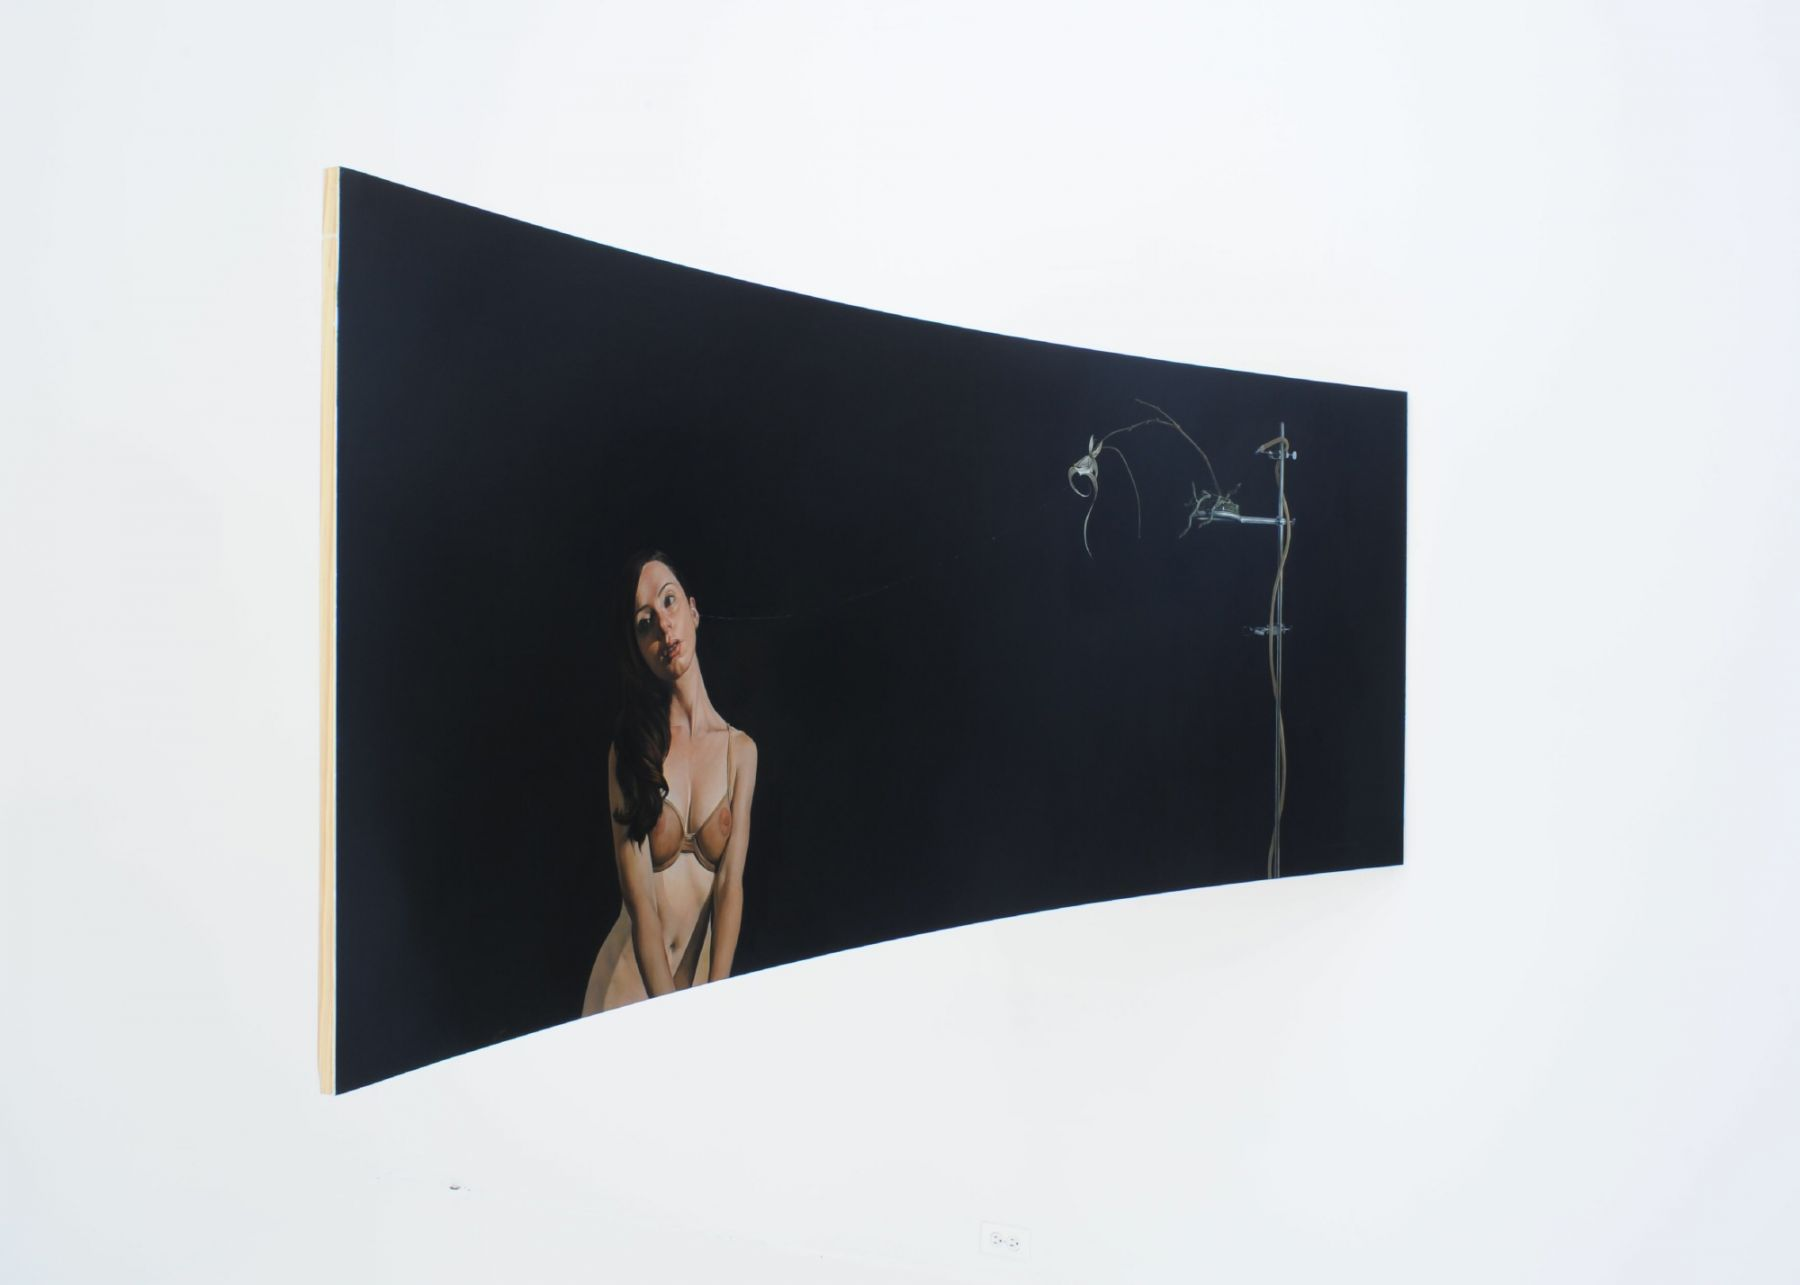 ERIK THOR SANDBERG_Reception_Reparatory Gestures_Is Realism Relevant?